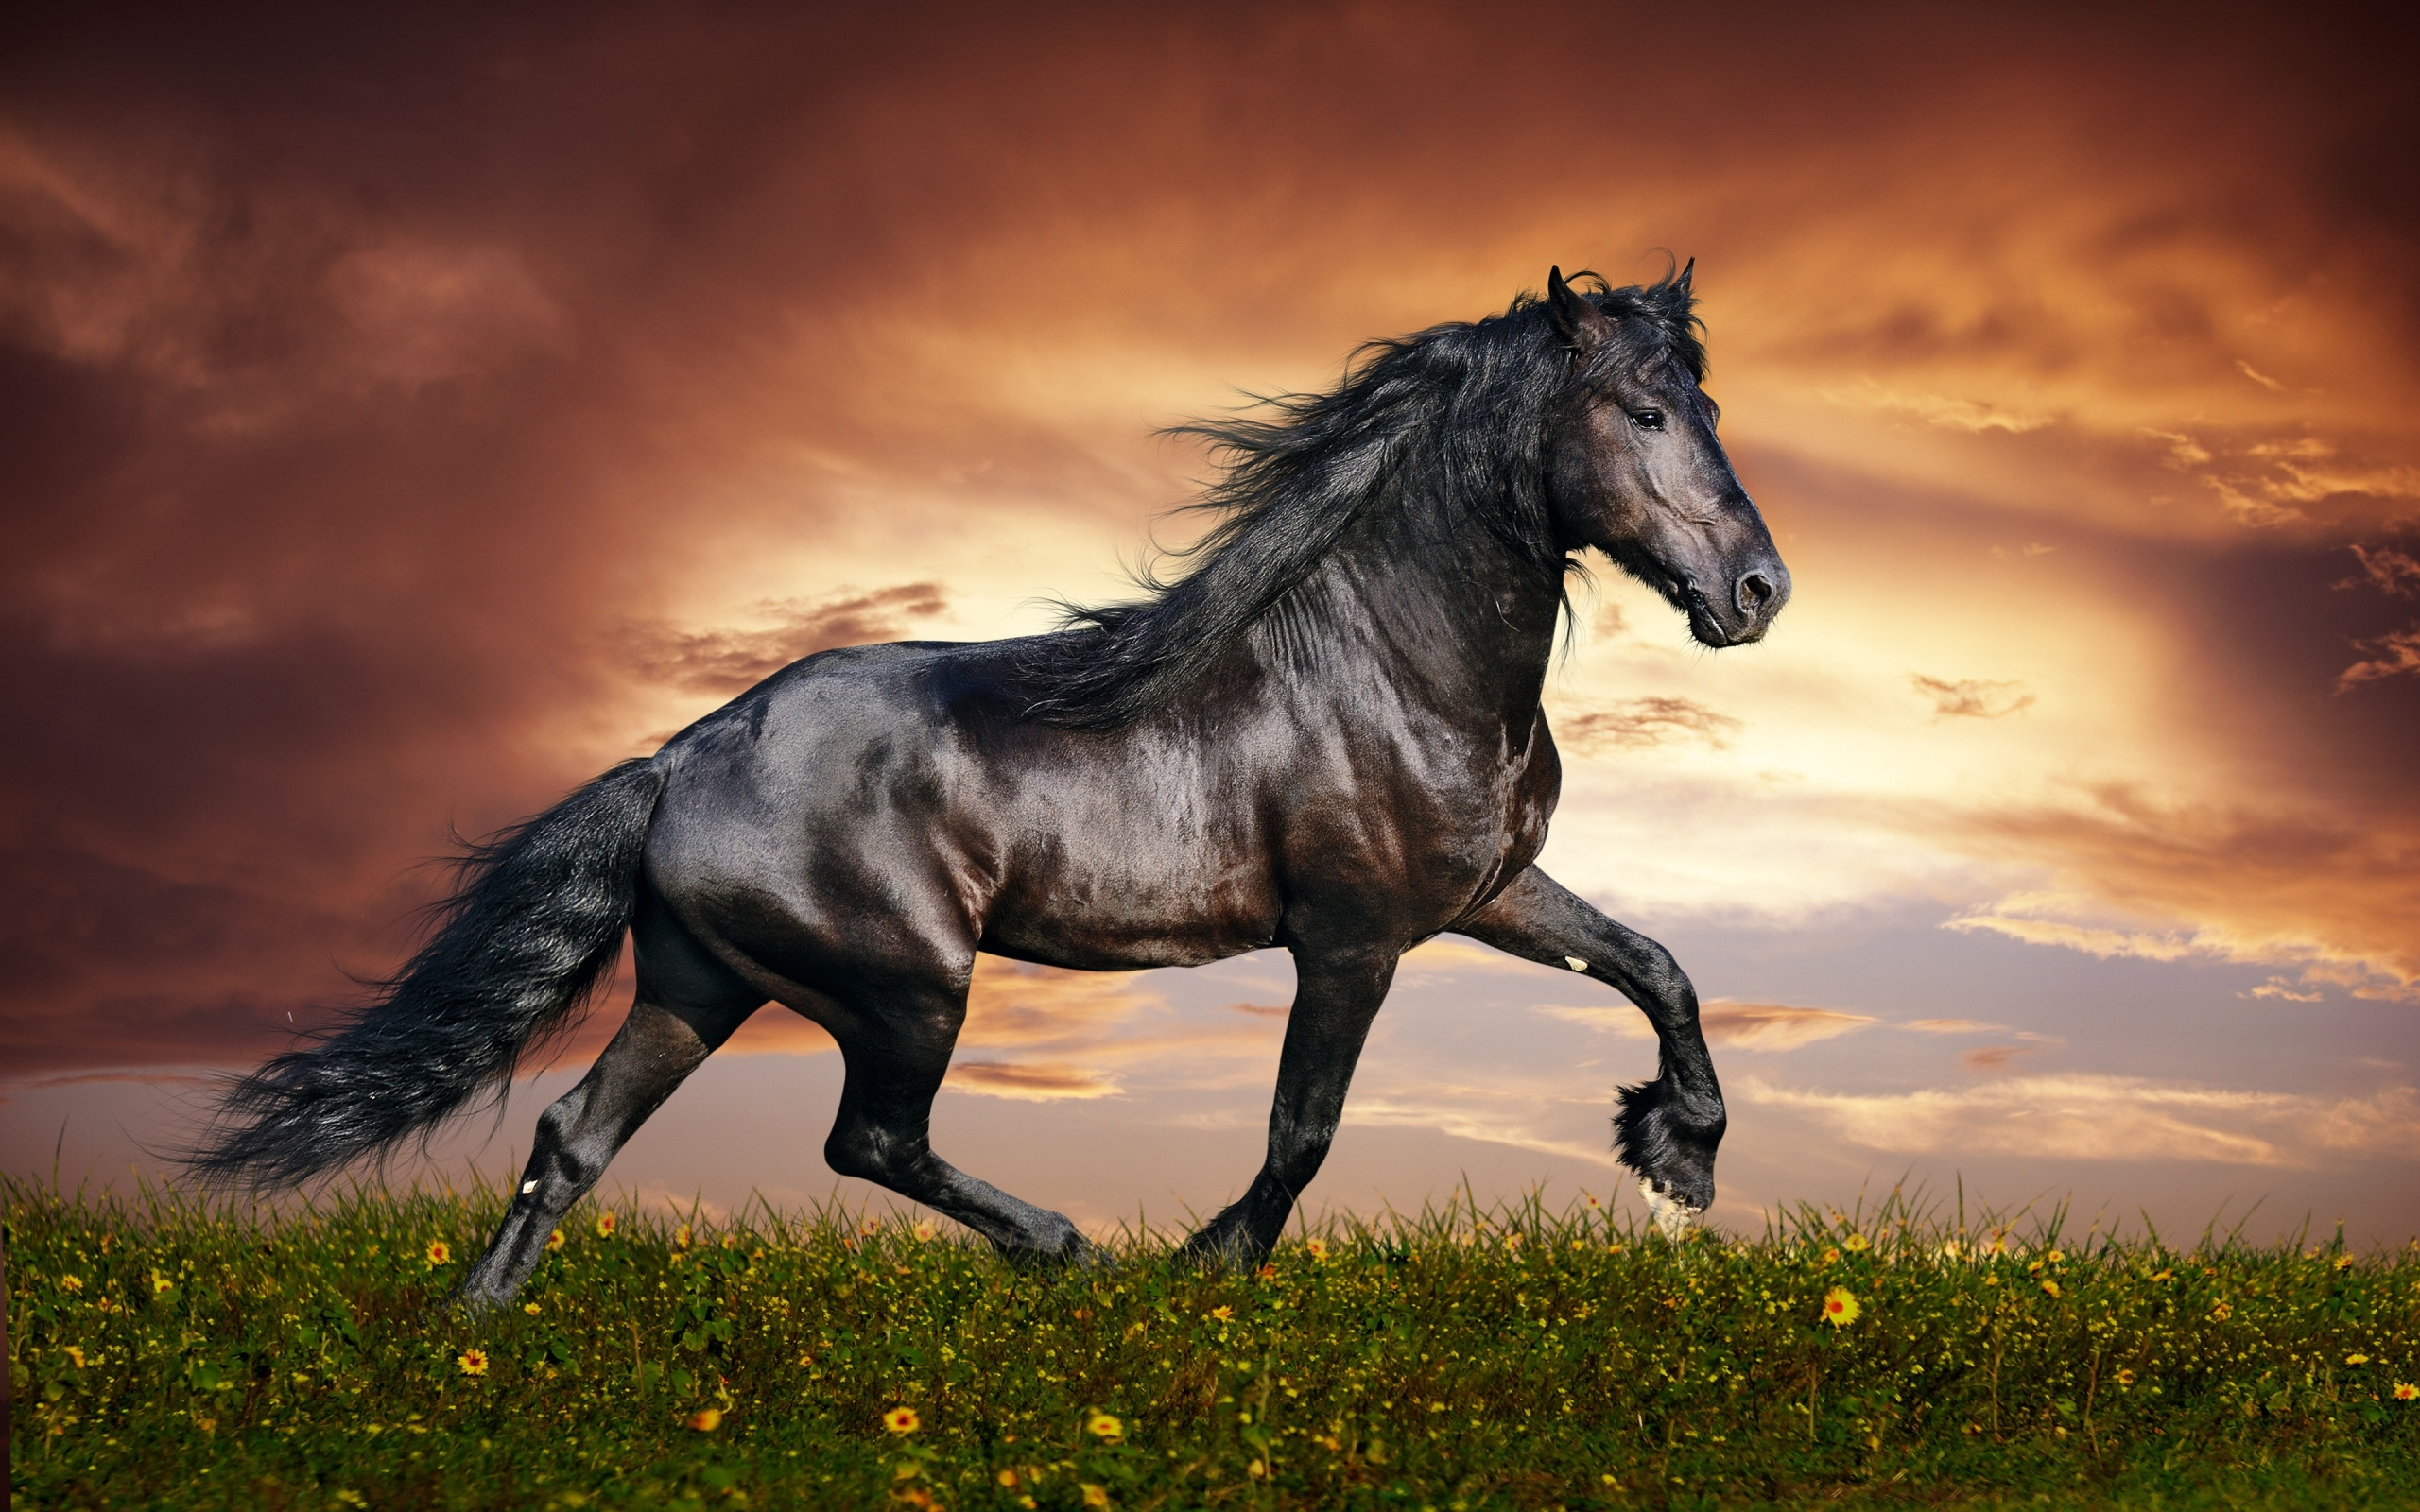 Horse Wallpaper Free Downloads